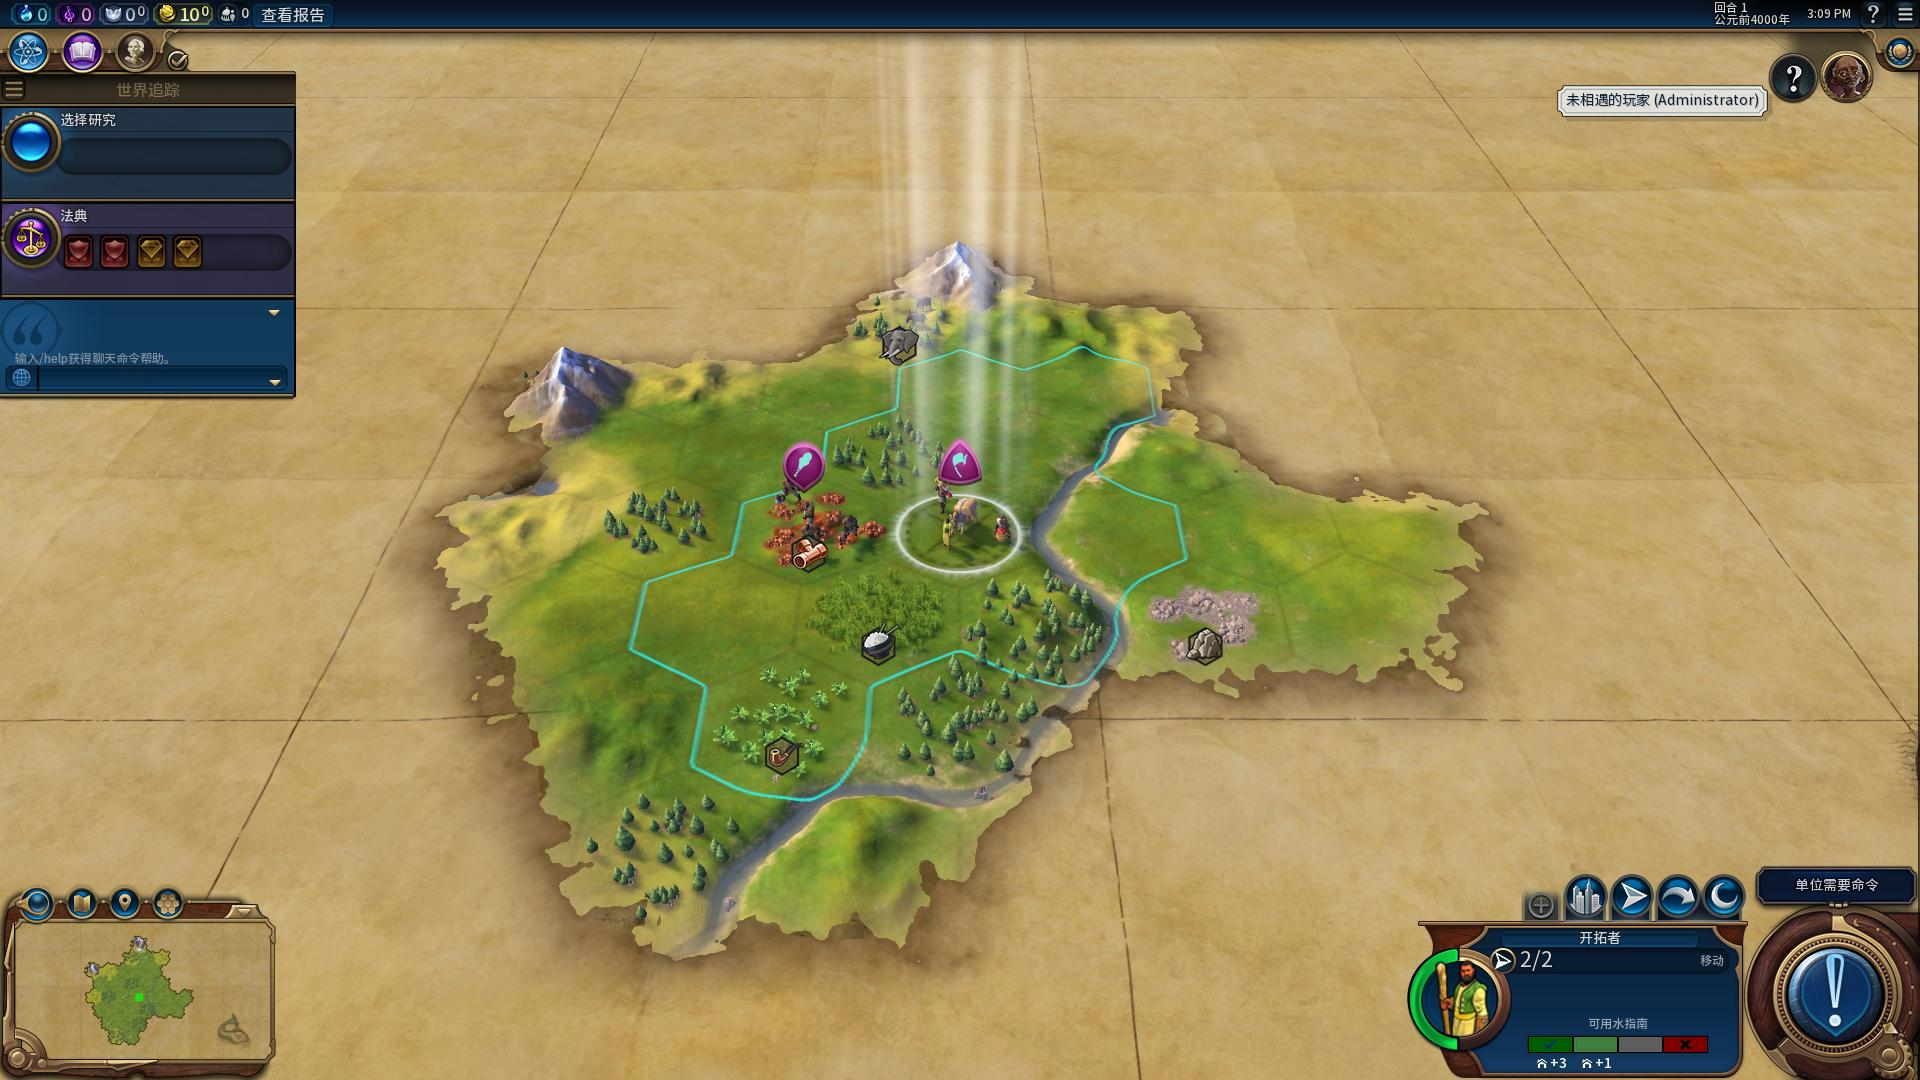 CivilizationVI 2016-10-21 15-09-16-14.jpg